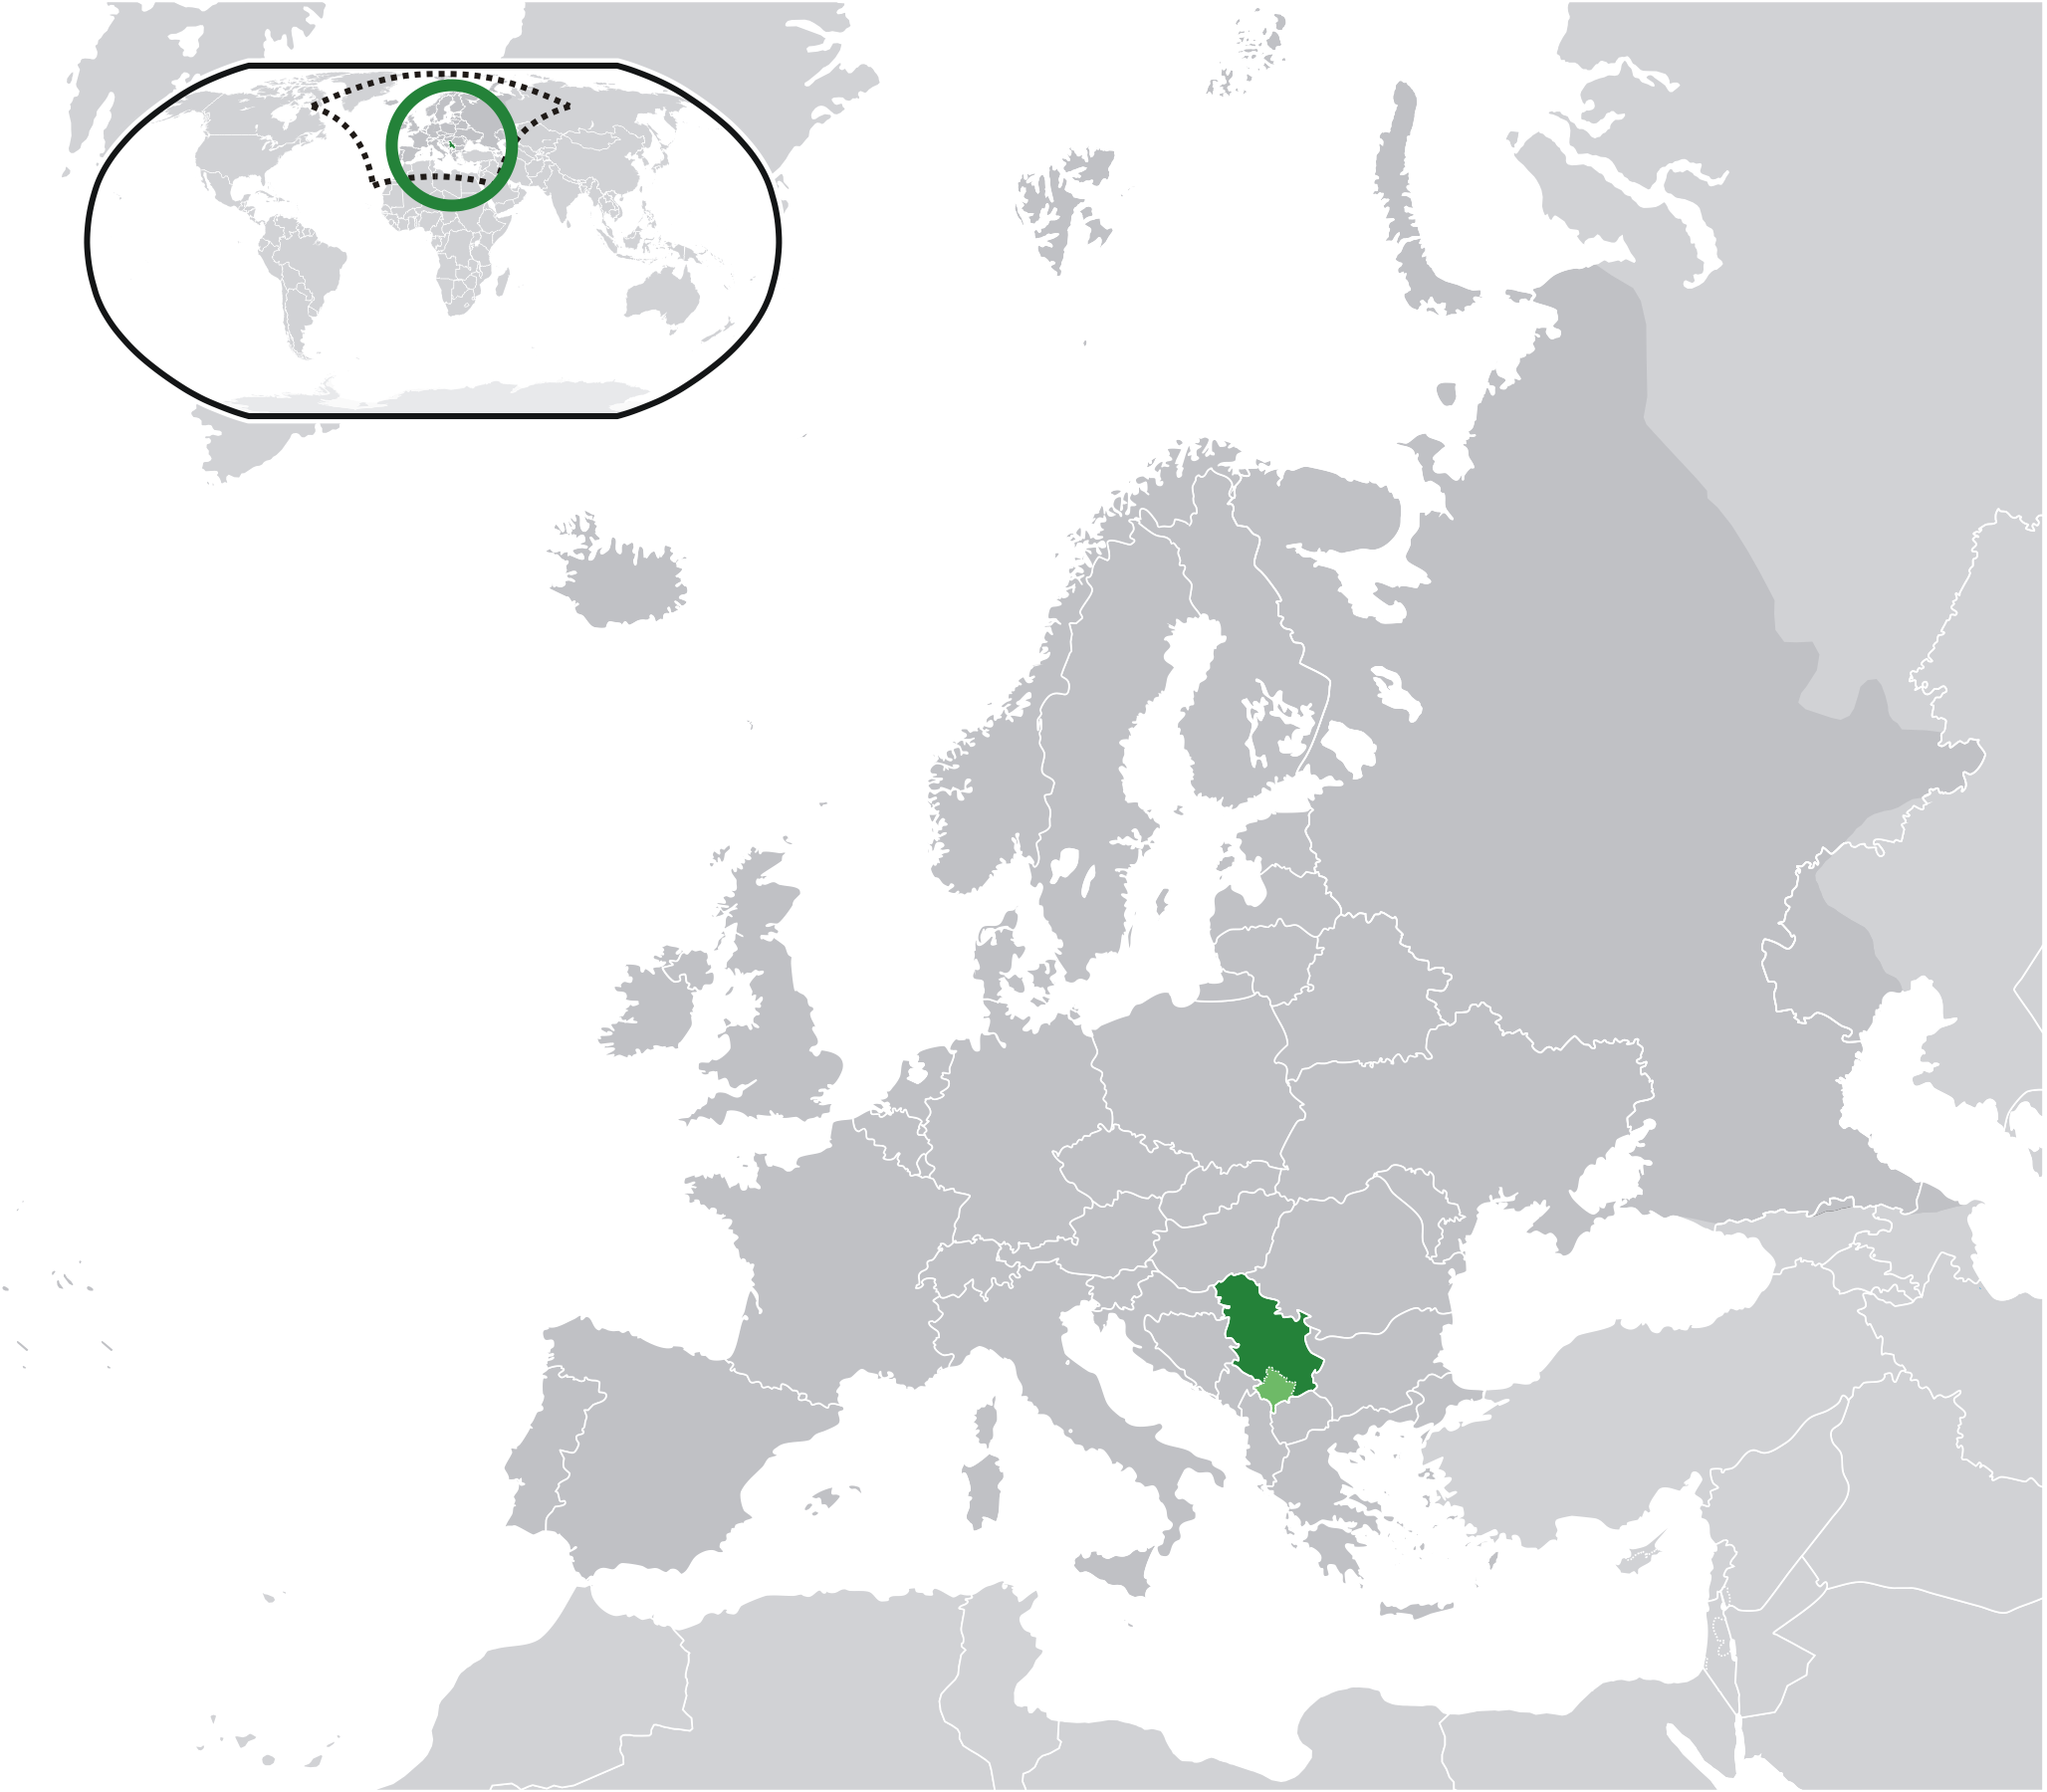 FileLocation Serbia Europepng Wikimedia Commons